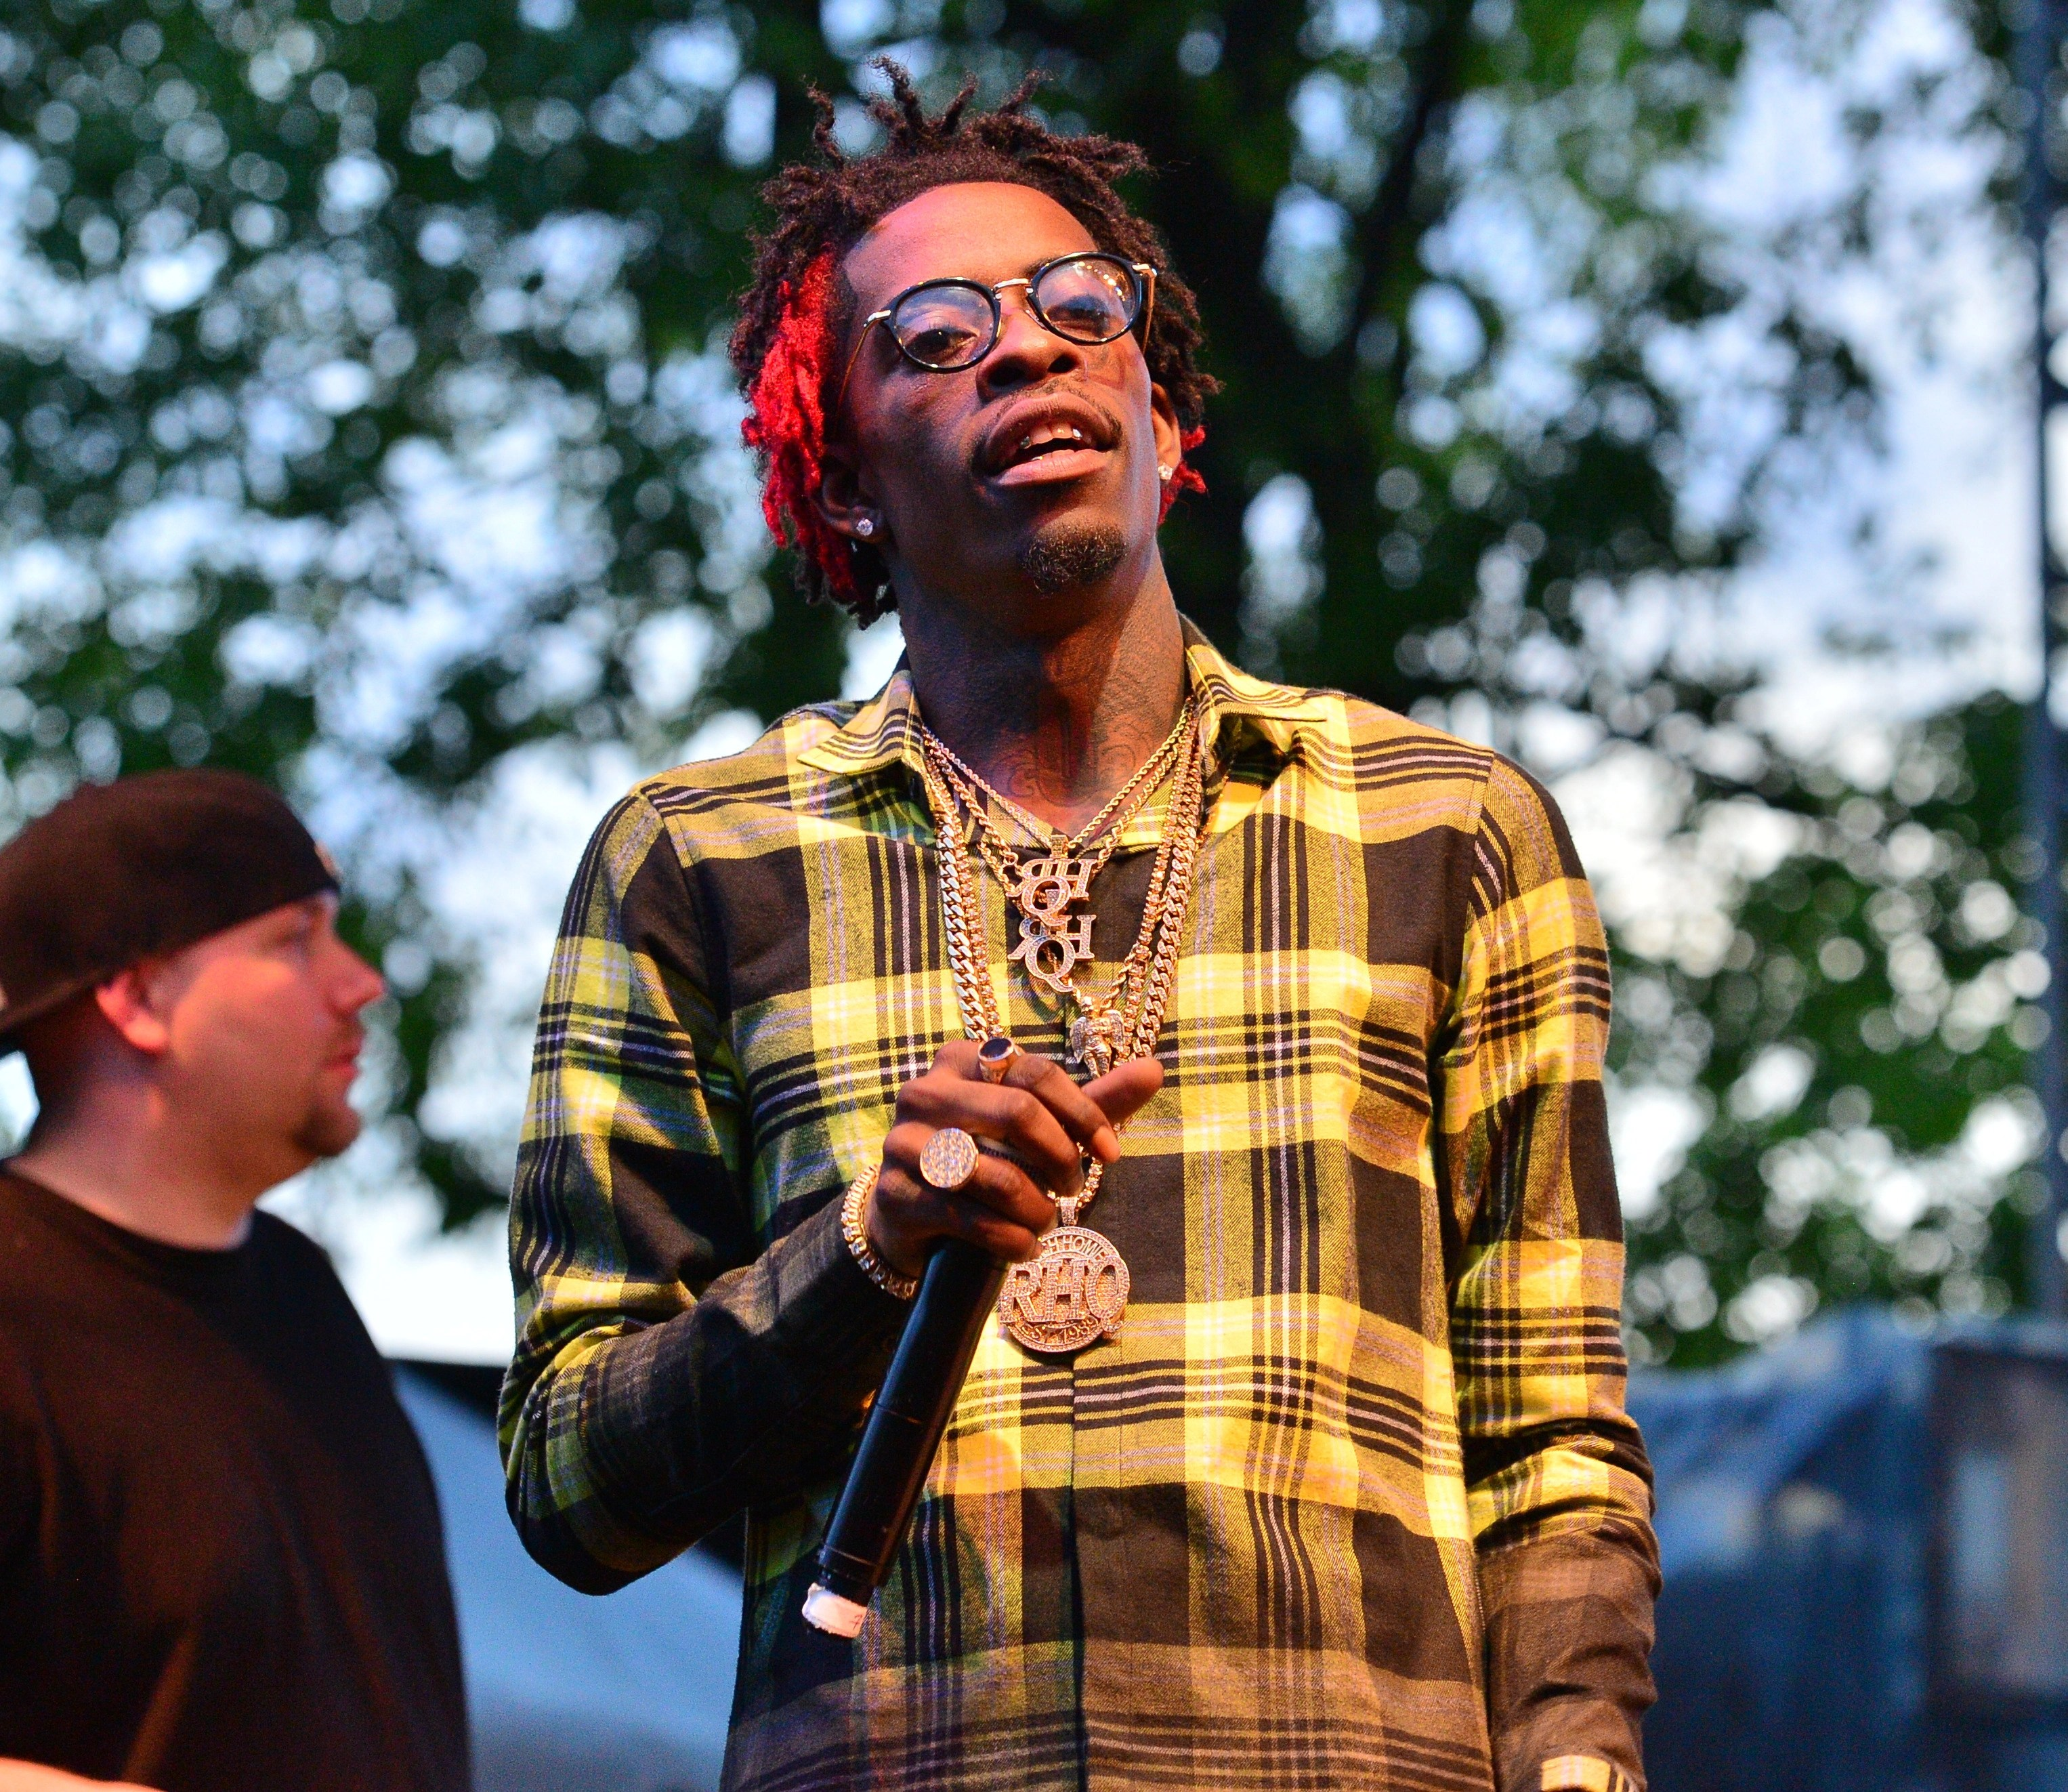 Rich Homie Quan Waves - Year of Clean Water